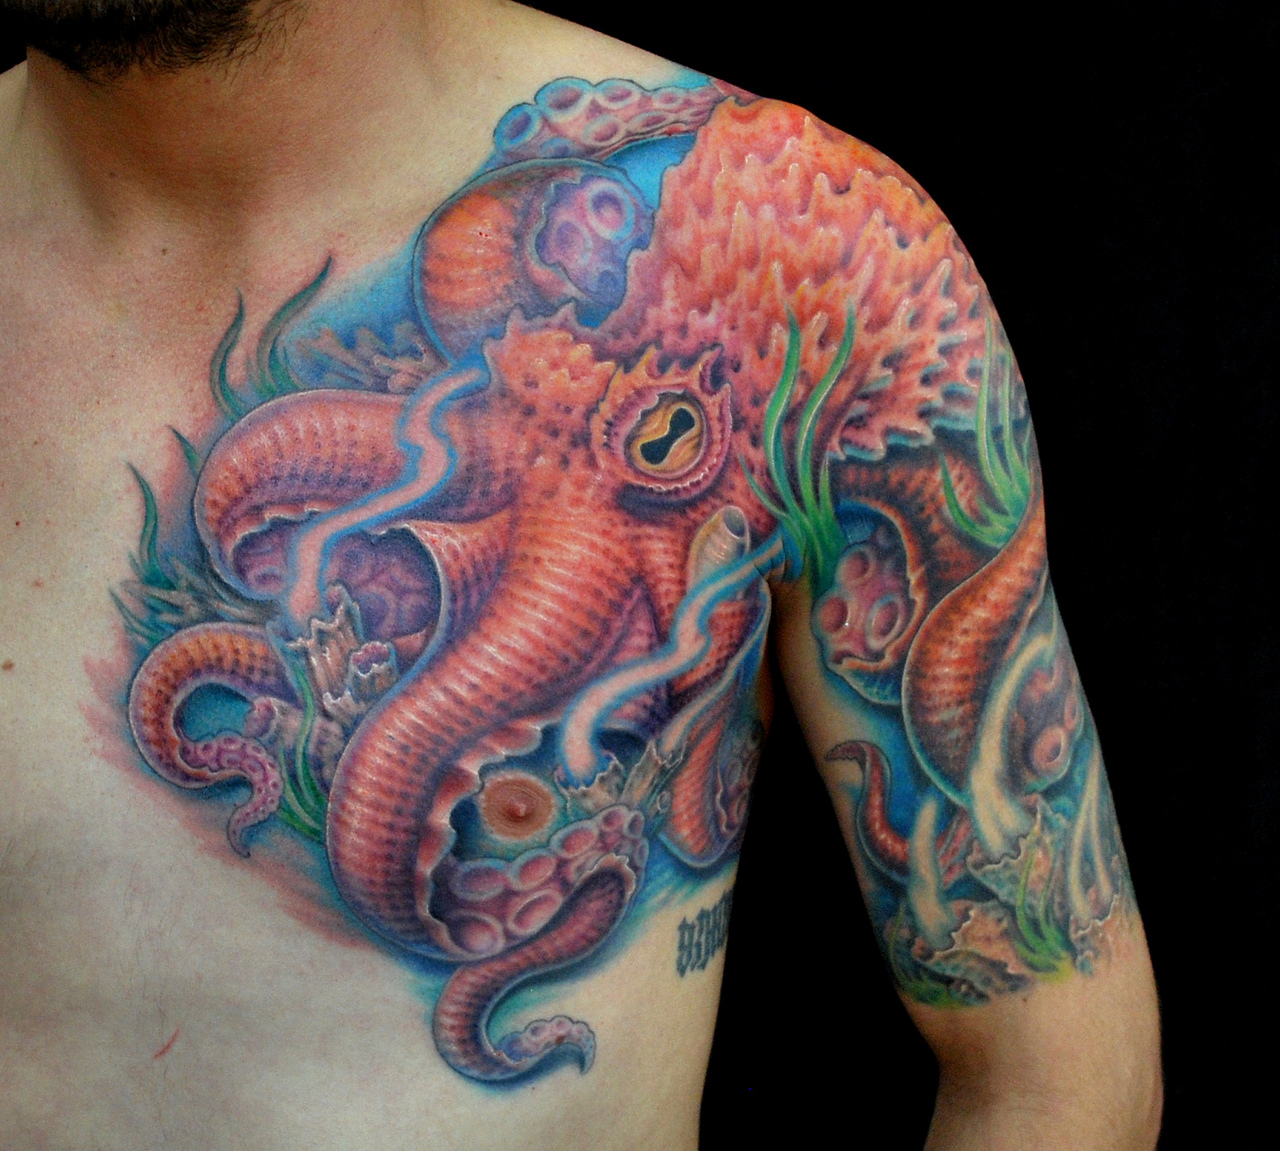 Mermaid Tattoo Designs as well Tattoo Pain Chart as well 28 Fancy Japanese Tattoo Art Designs besides Star Wars Sleeve Tattoo likewise Japanese Dragon Tattoo Designs For Men. on shoulder scales tattoo